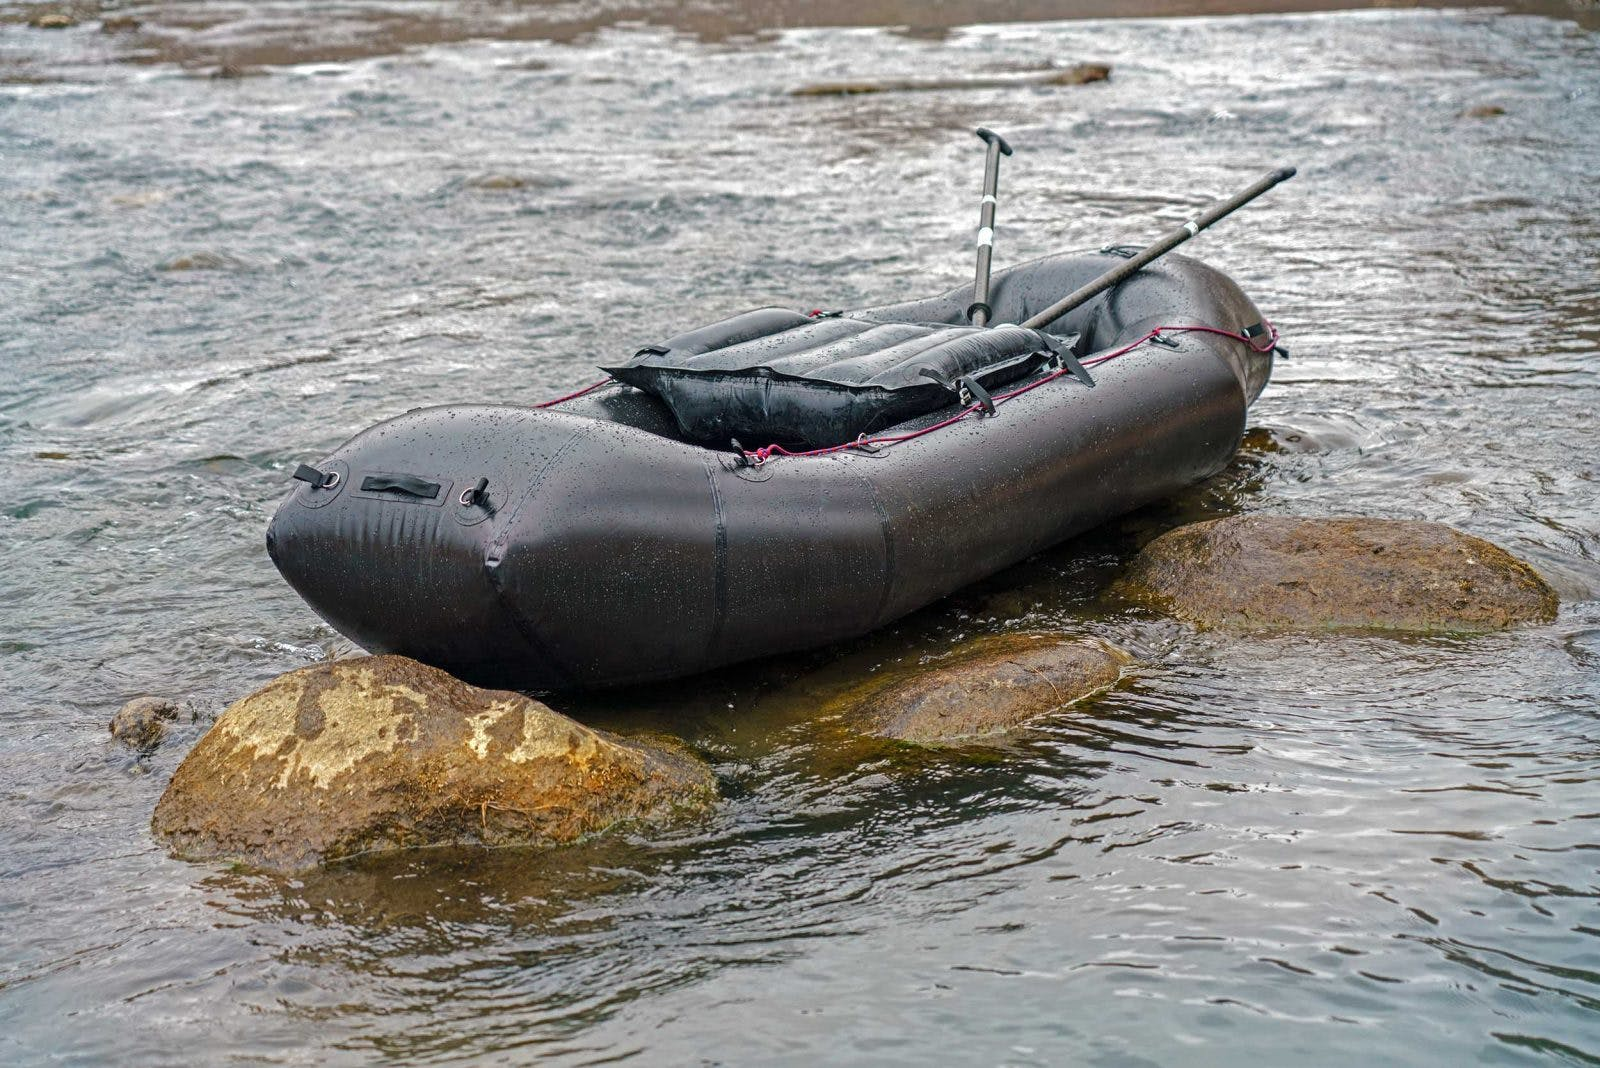 The heart of the 2018 Forager is the new bow design, which was adapted from the development of our new Caribou model. In the Forager, the new design is optimized to provide additional air volume and better performance in waves and whitewater while still providing excellent tracking and handling in the wind.